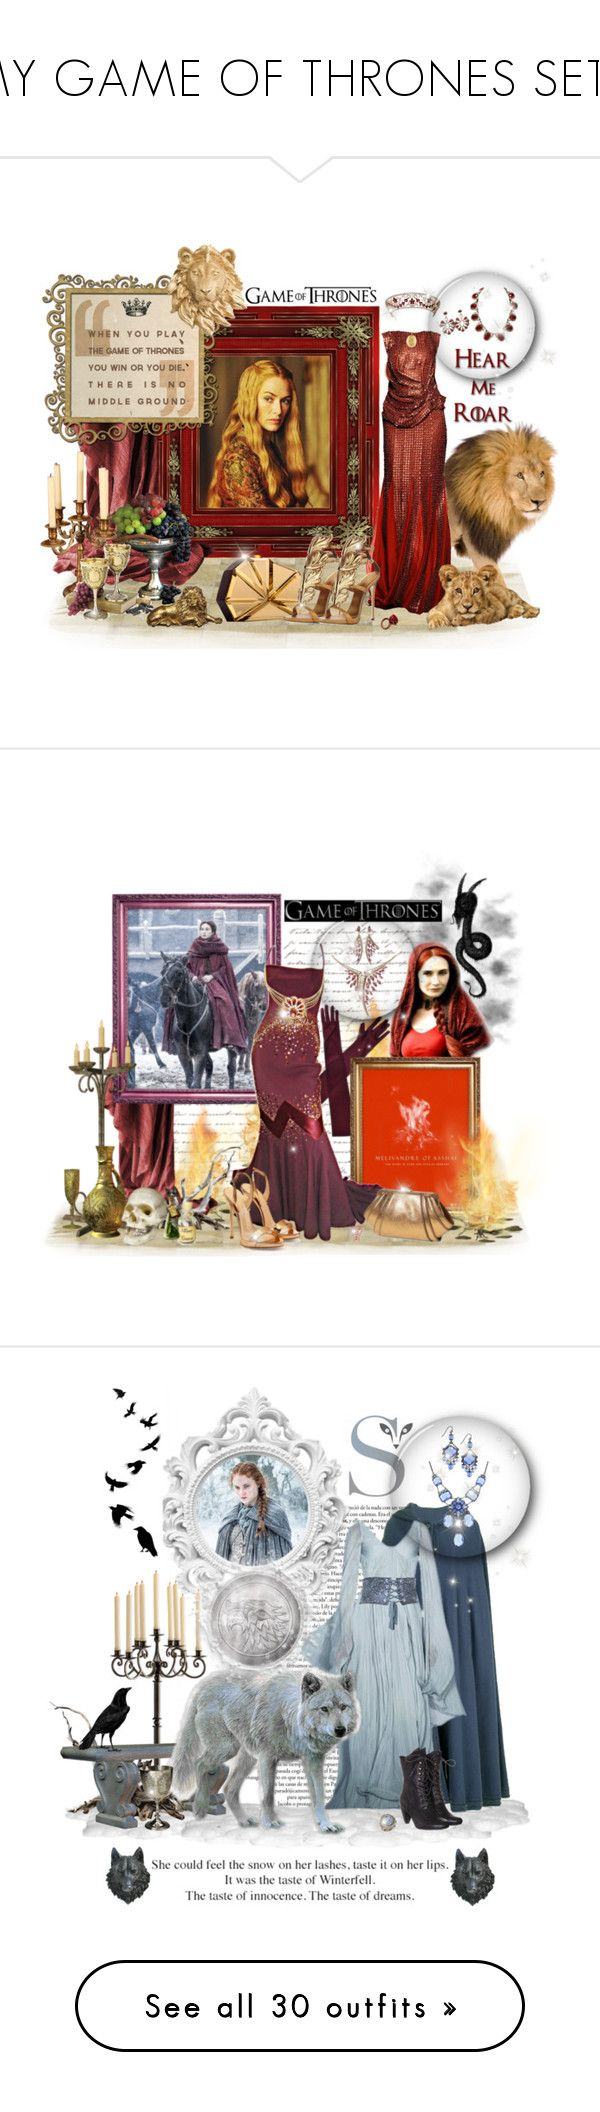 """""""MY GAME OF THRONES SETS"""" by leanne-mcclean ❤ liked on Polyvore featuring BY SOPHIE, KING, Rauwolf, Giuseppe Zanotti, Kenneth Jay Lane, Once Upon a Time, Alaïa, Shaun Leane, ZAC Zac Posen and WALL"""